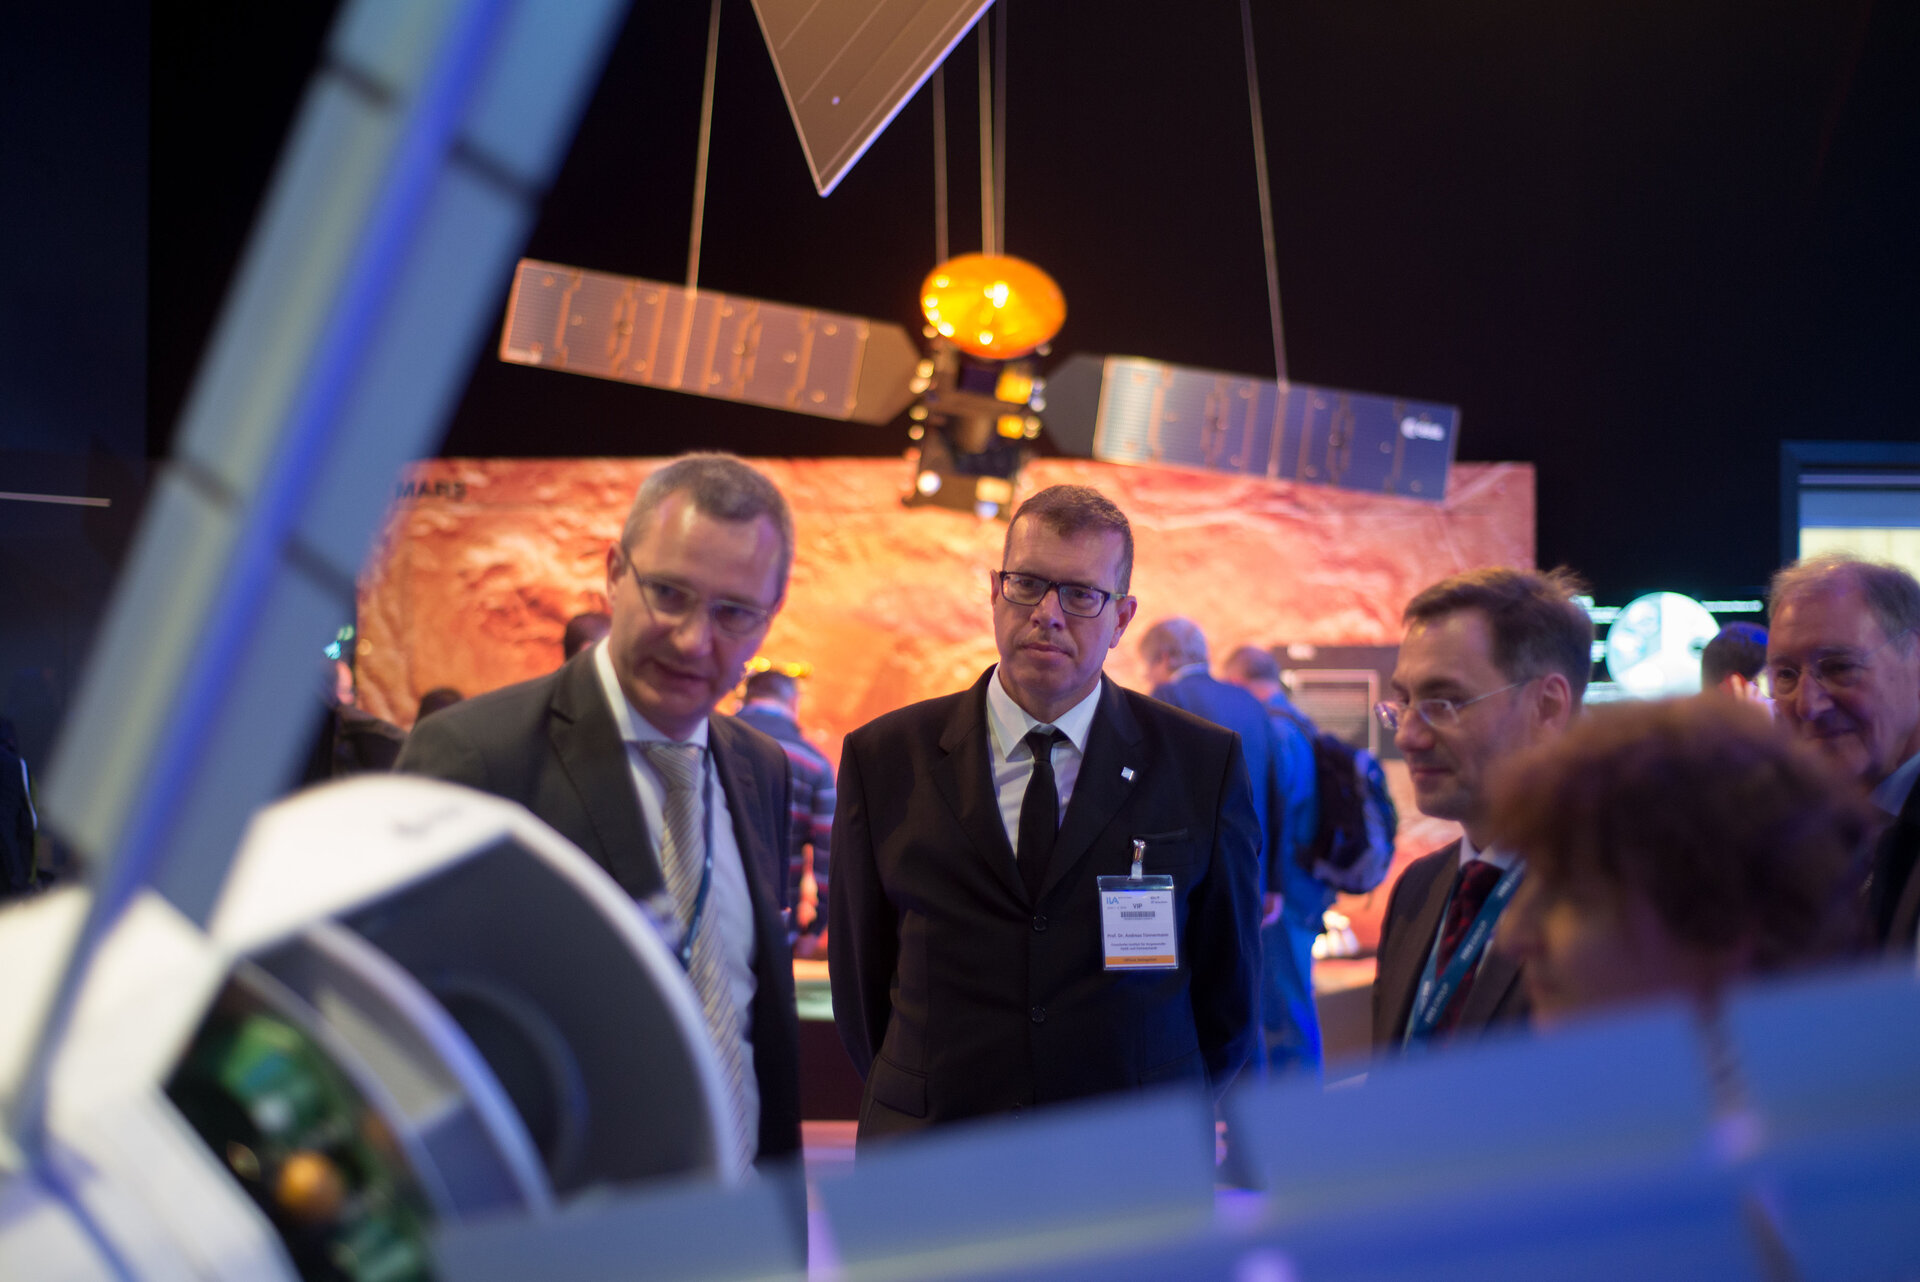 Dr. Andreas Tünnermann visits the 'Space for Earth' pavilion